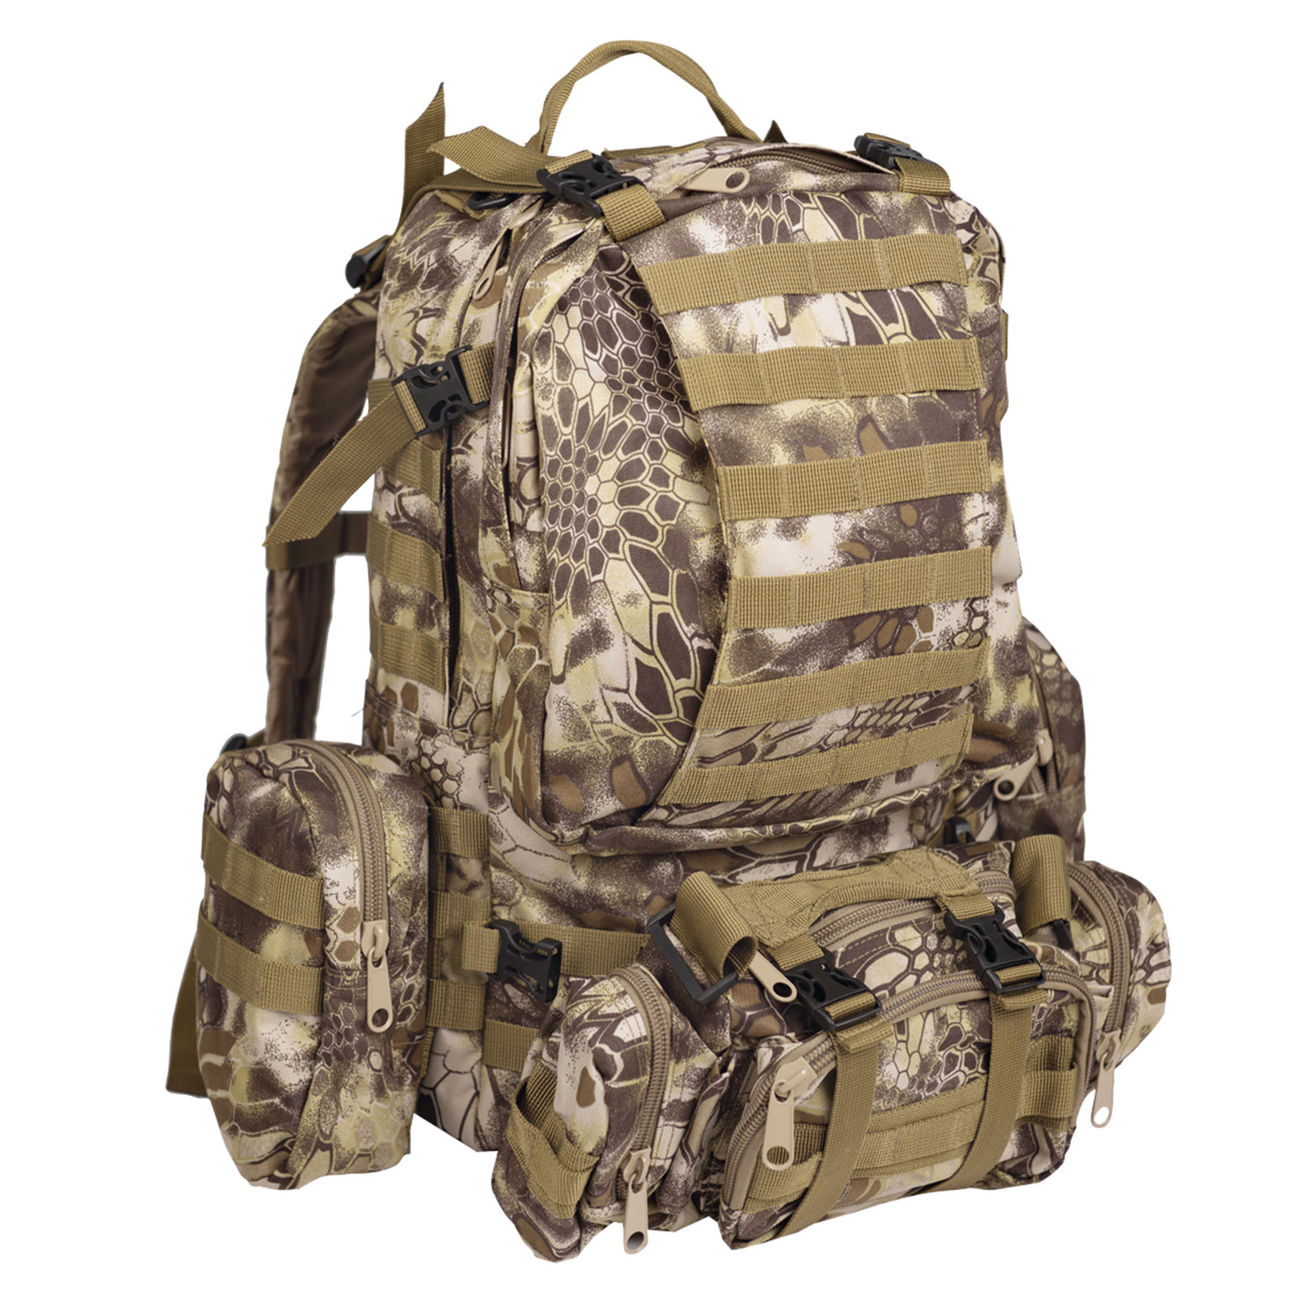 Mil-Tec Rucksack Defense Pack Assembly 36 ltr. mandra tan 0